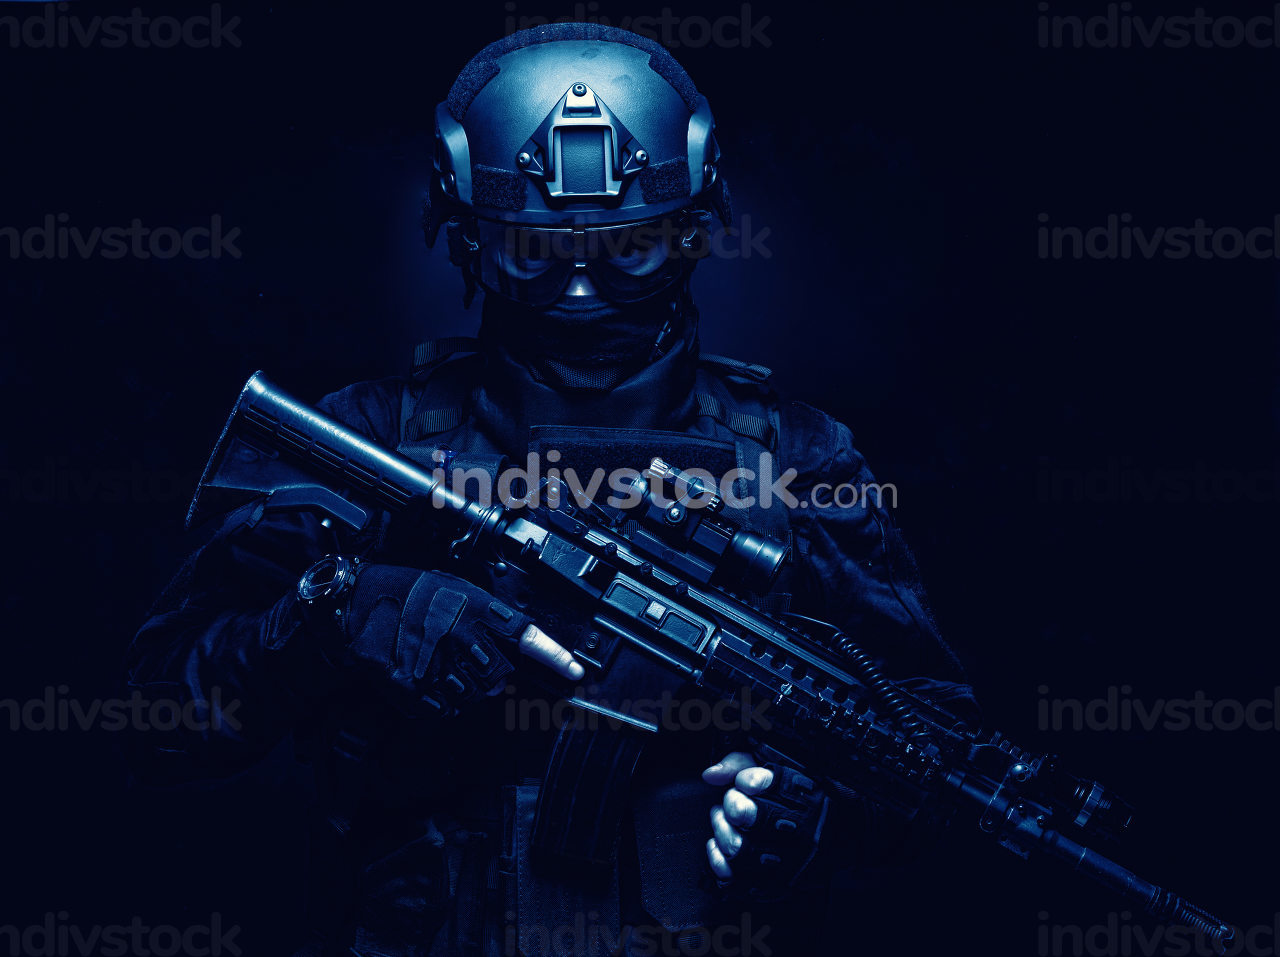 SWAT fighter, police tactical group member, quick reaction team shooter in black uniform, body armor, ballistic goggles and battle helmet, armed assault rifle with optical sight, standing in darkness